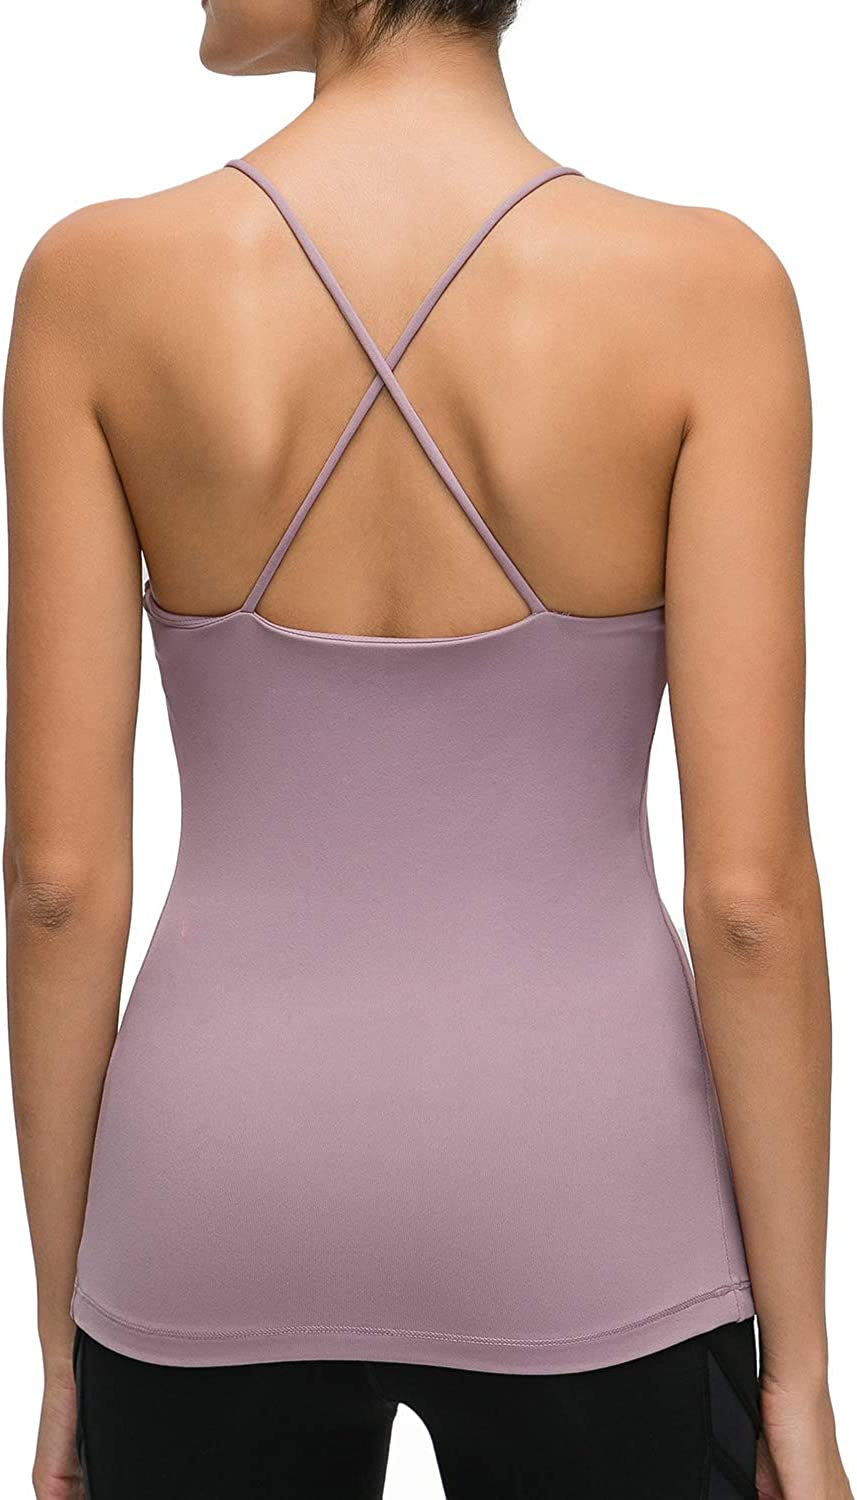 Lemedy Workout Tank Top Built in Bra Strappy Back Yoga Activewear for Women